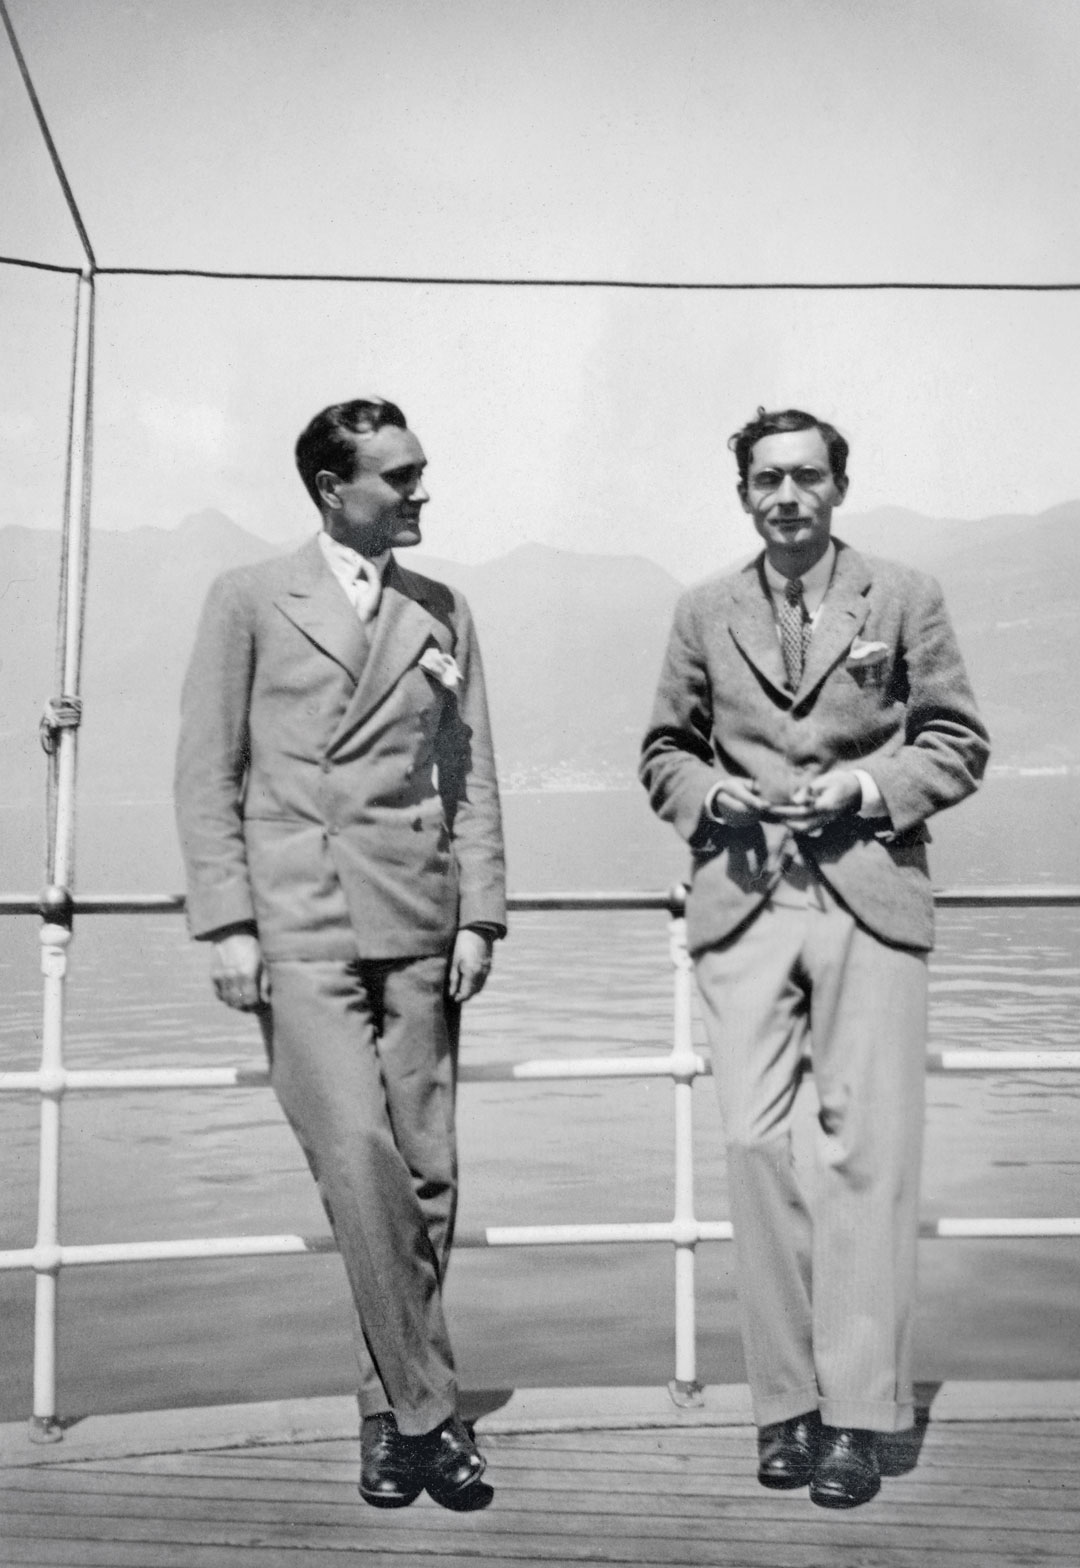 Philip (left) and Alfred H. Barr, Jr. (right), Lake Maggiore, Italy, April 1933. From Philip Johnson: A Visual Biography